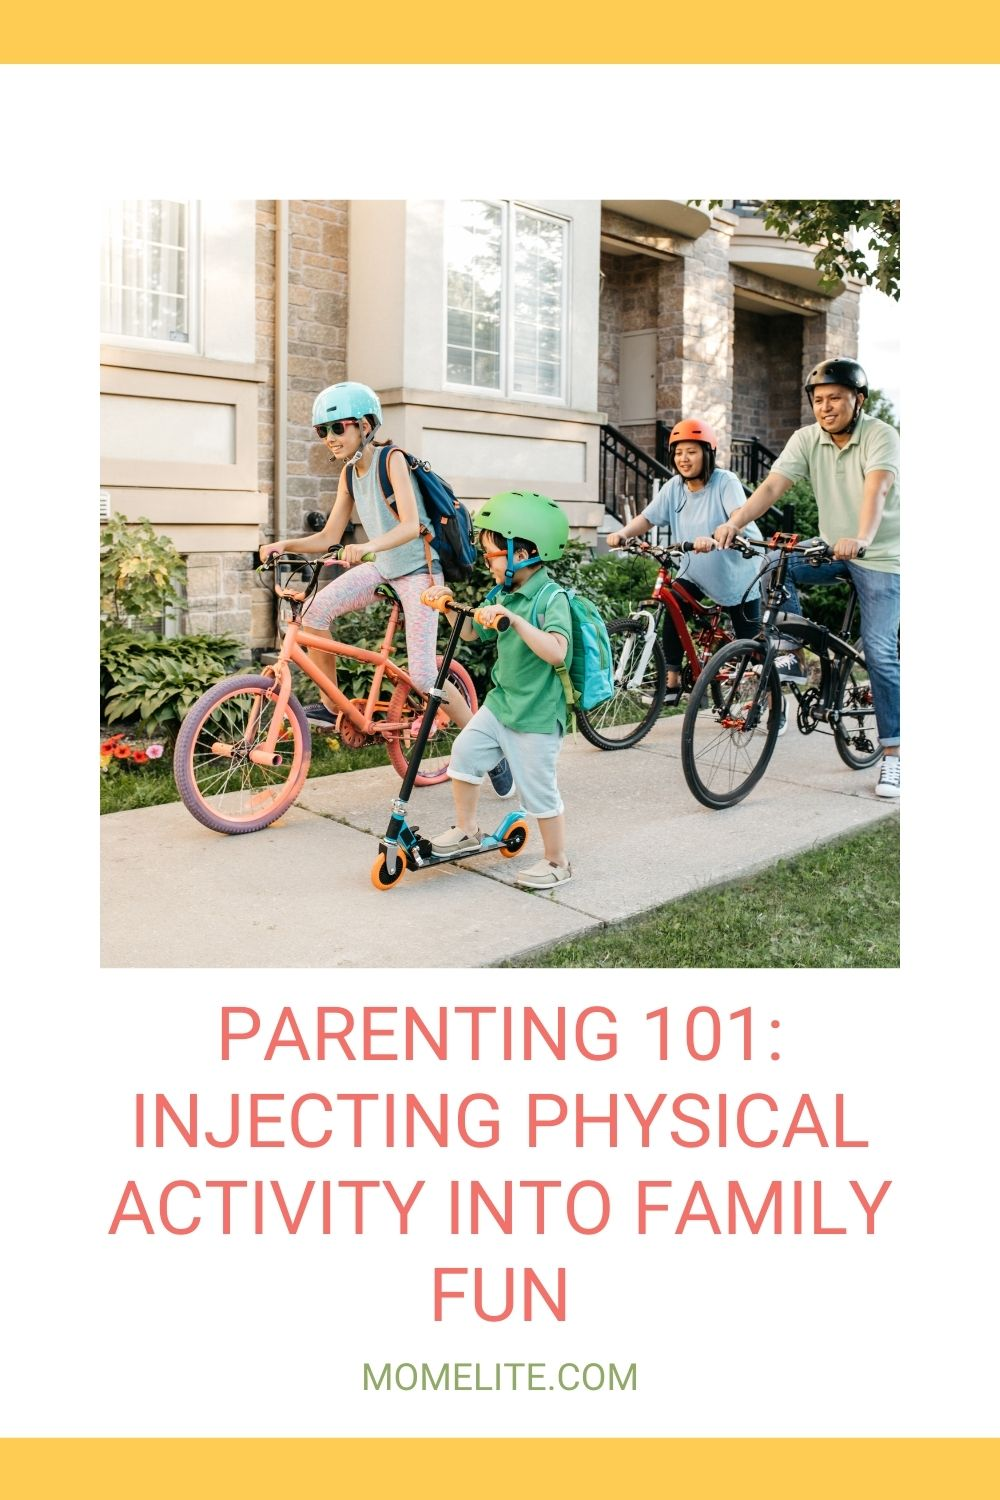 PARENTING 101: INJECTING PHYSICAL ACTIVITY INTO FAMILY FUN